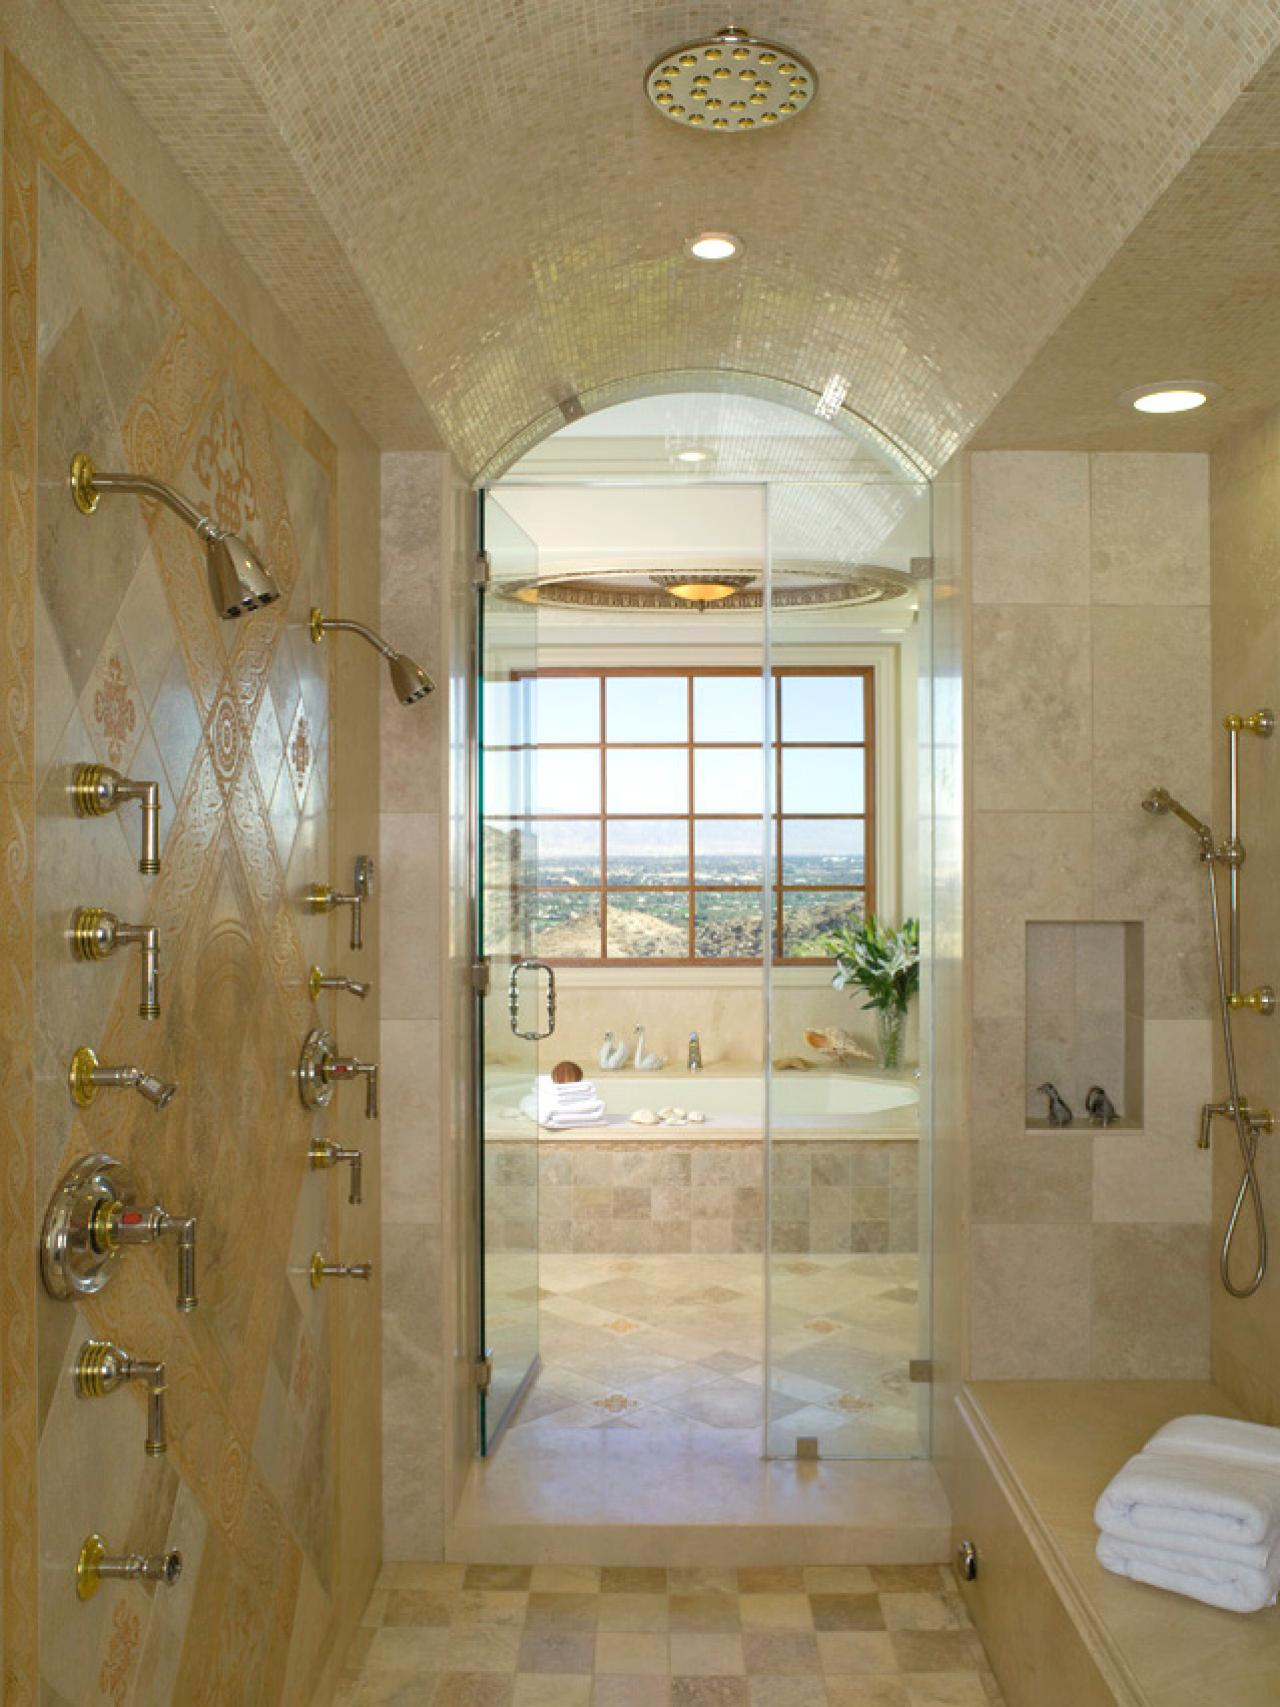 Shower enclosures hgtv for New bathroom ideas images